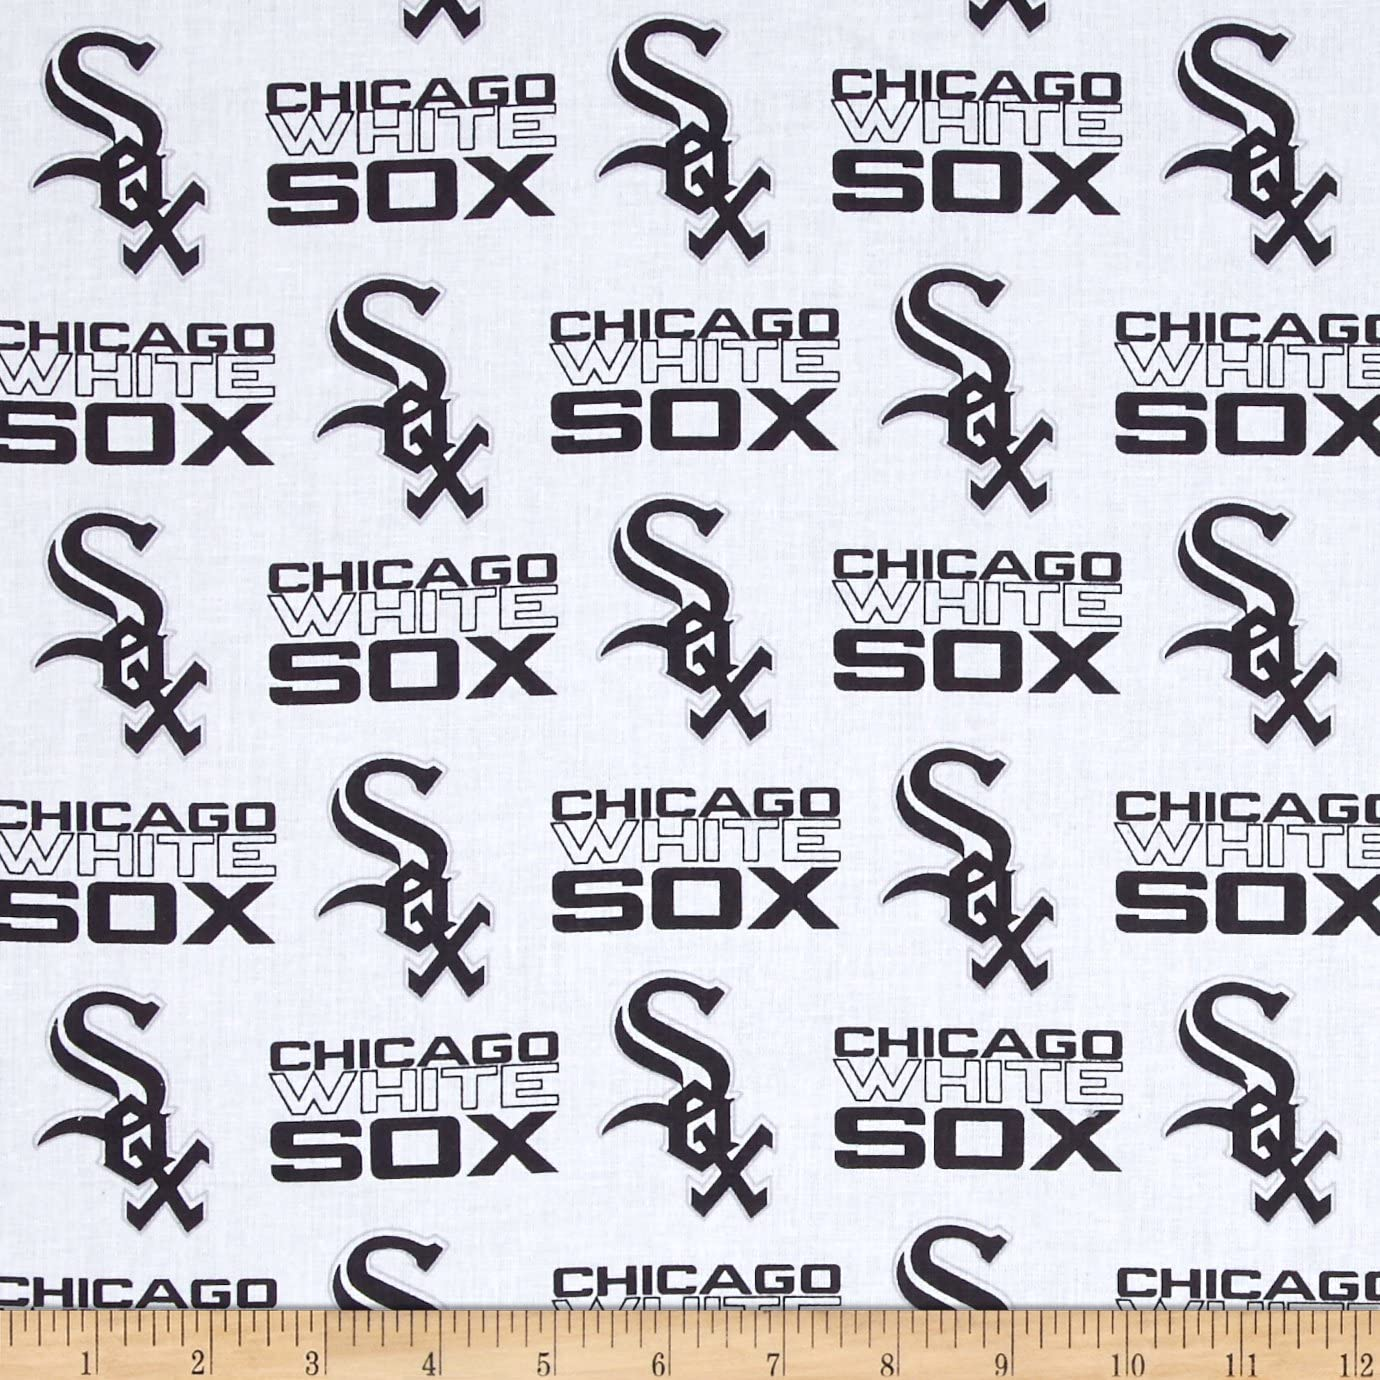 MLB Cotton Broadcloth Chicago White Sox Black/White Fabric by The Yard